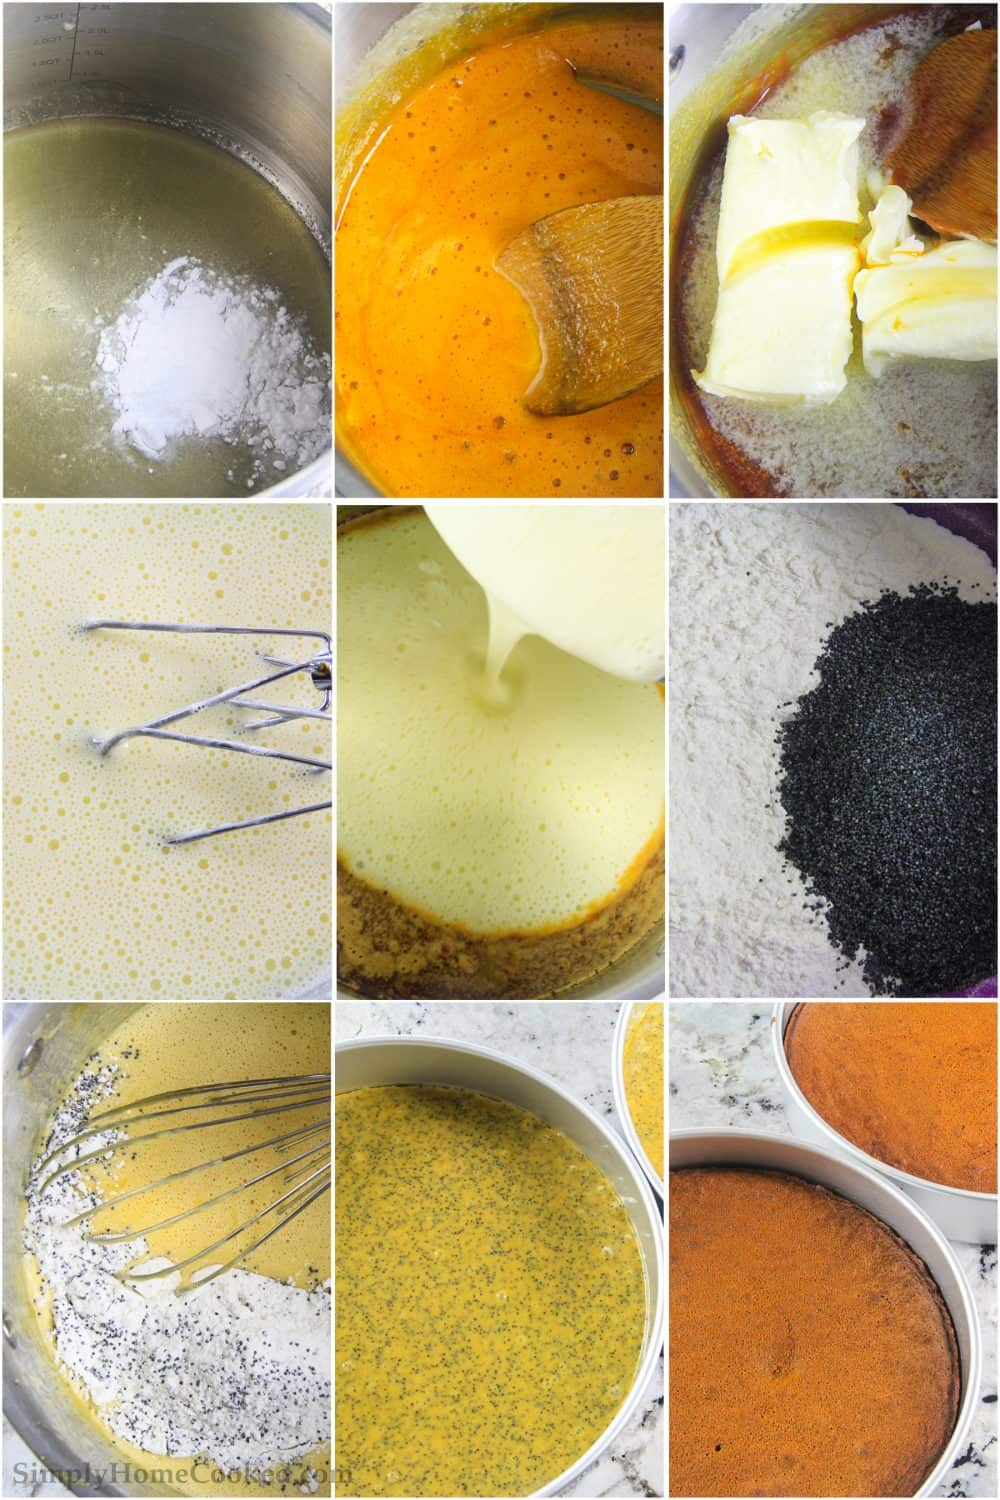 Nine tiled images of honey and baking soda being mixed with butter, sugar, poppy seeds, flour, and eggs, then poured into two bake pans.